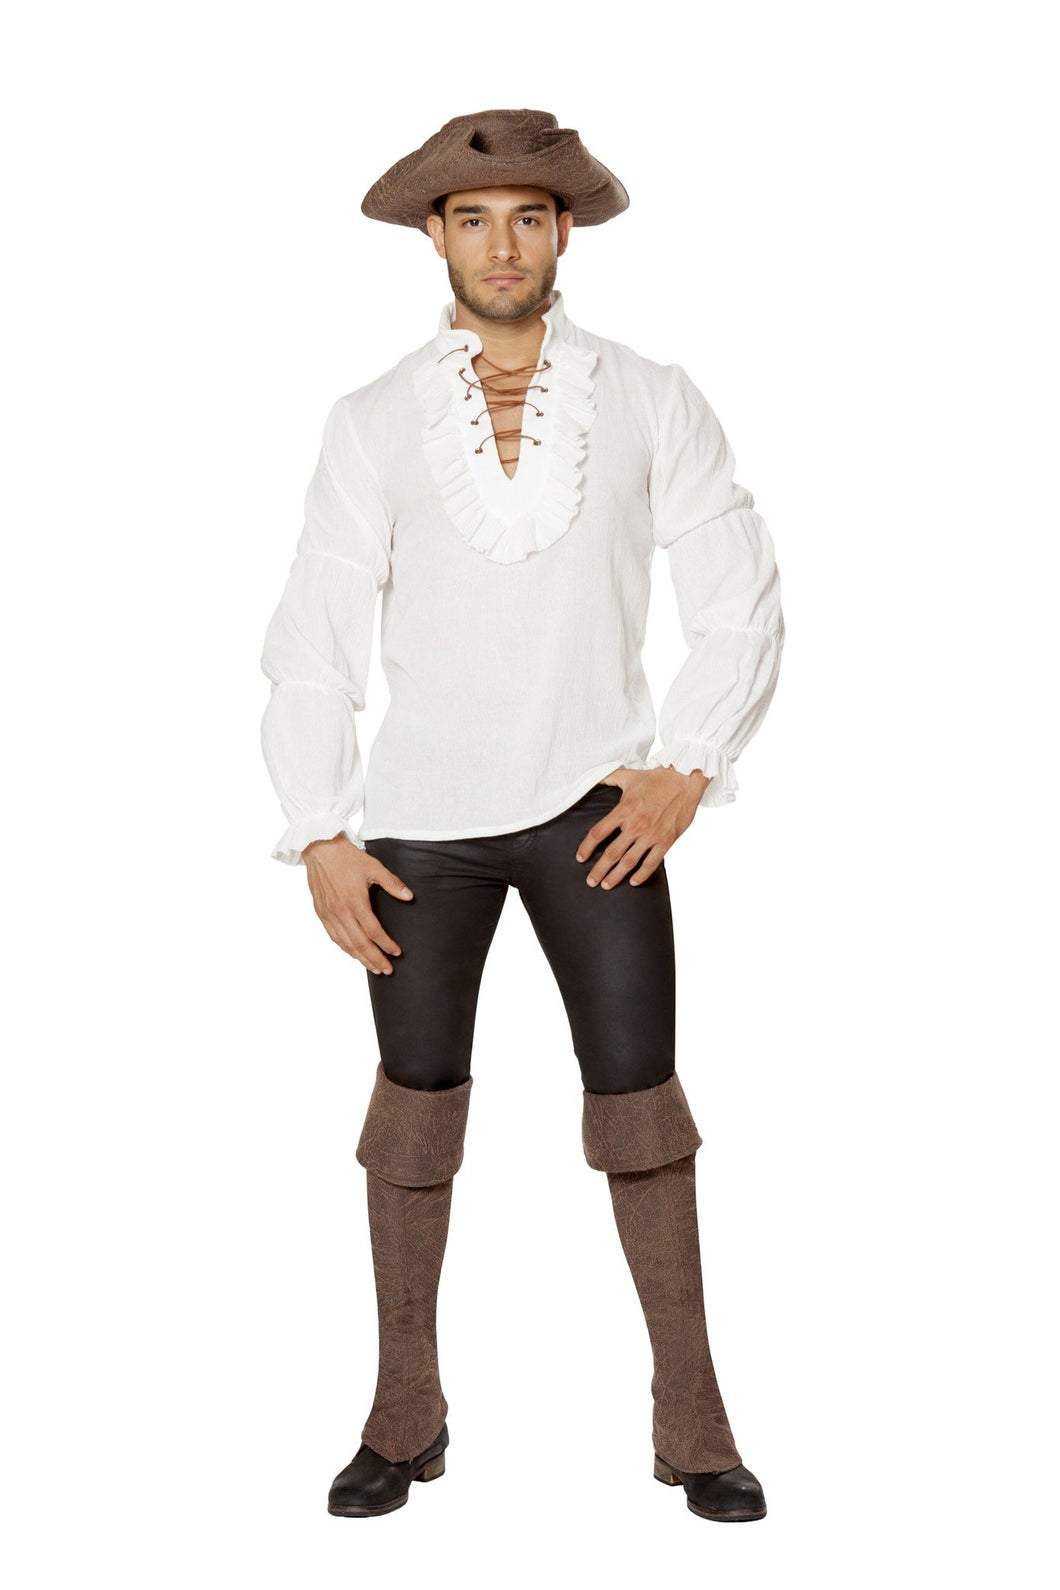 4651 - Pirate Shirt for Men